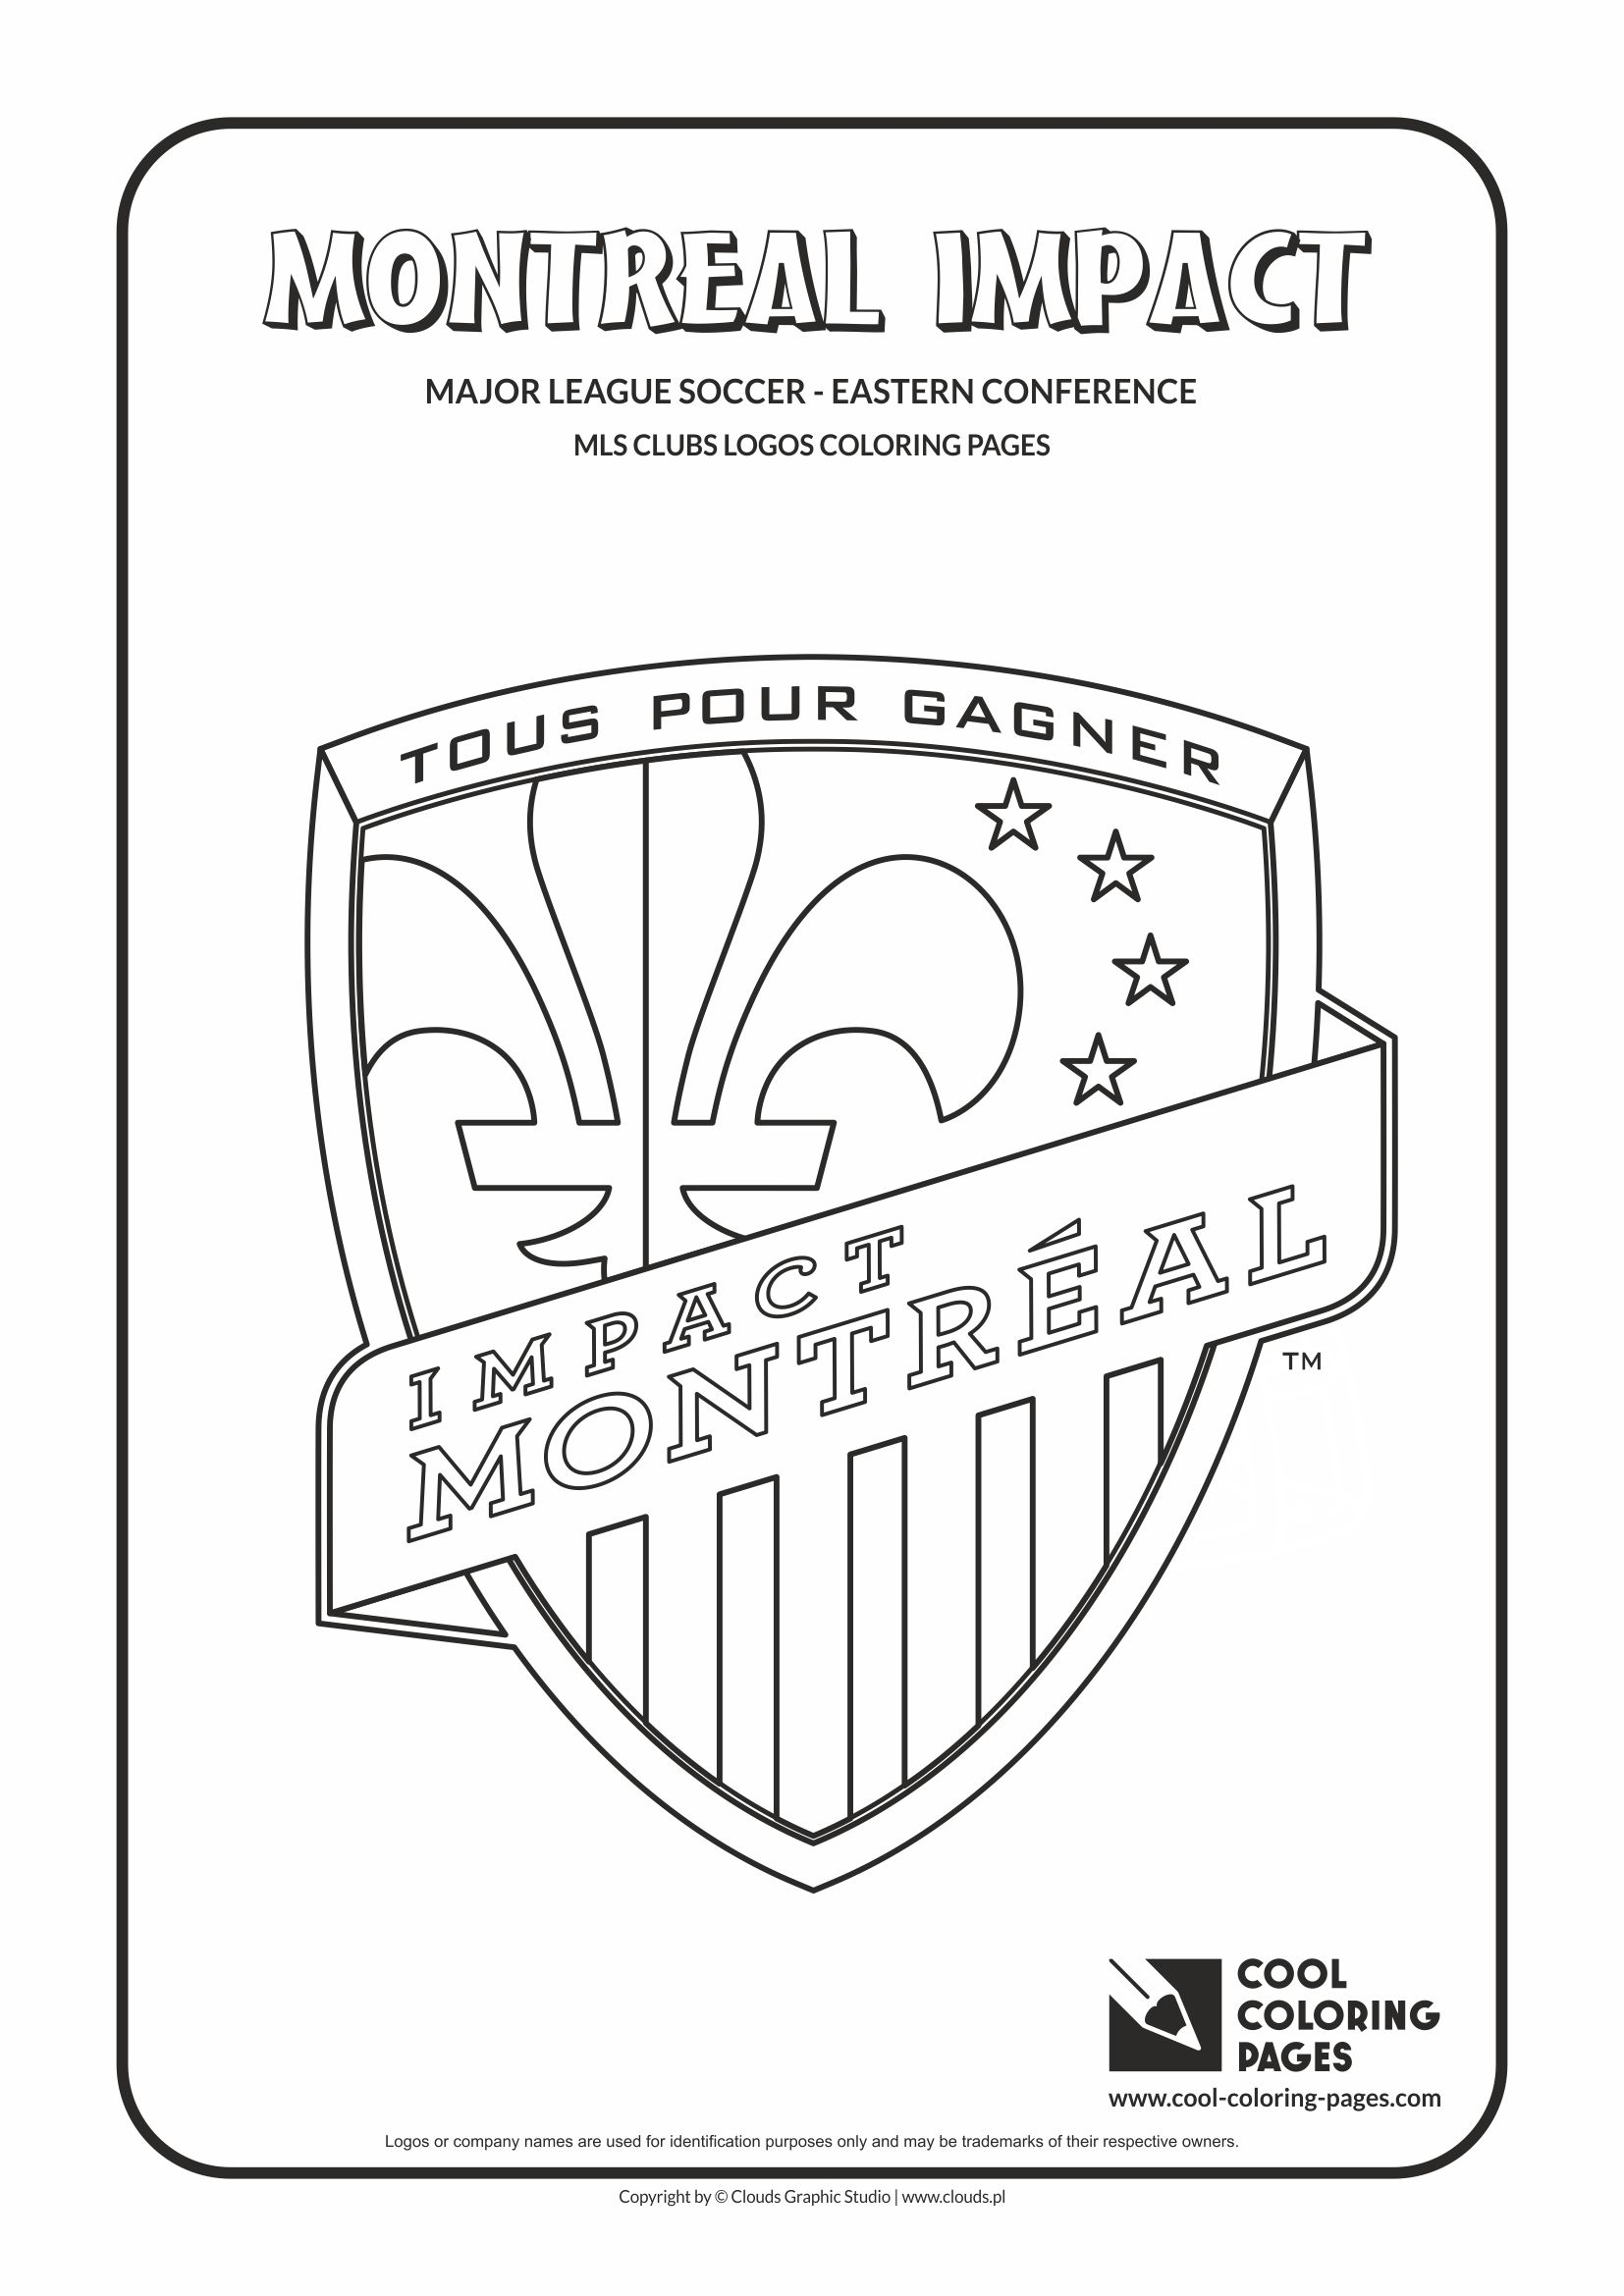 Cool Coloring Pages Montreal Impact logo coloring pages - Cool ...